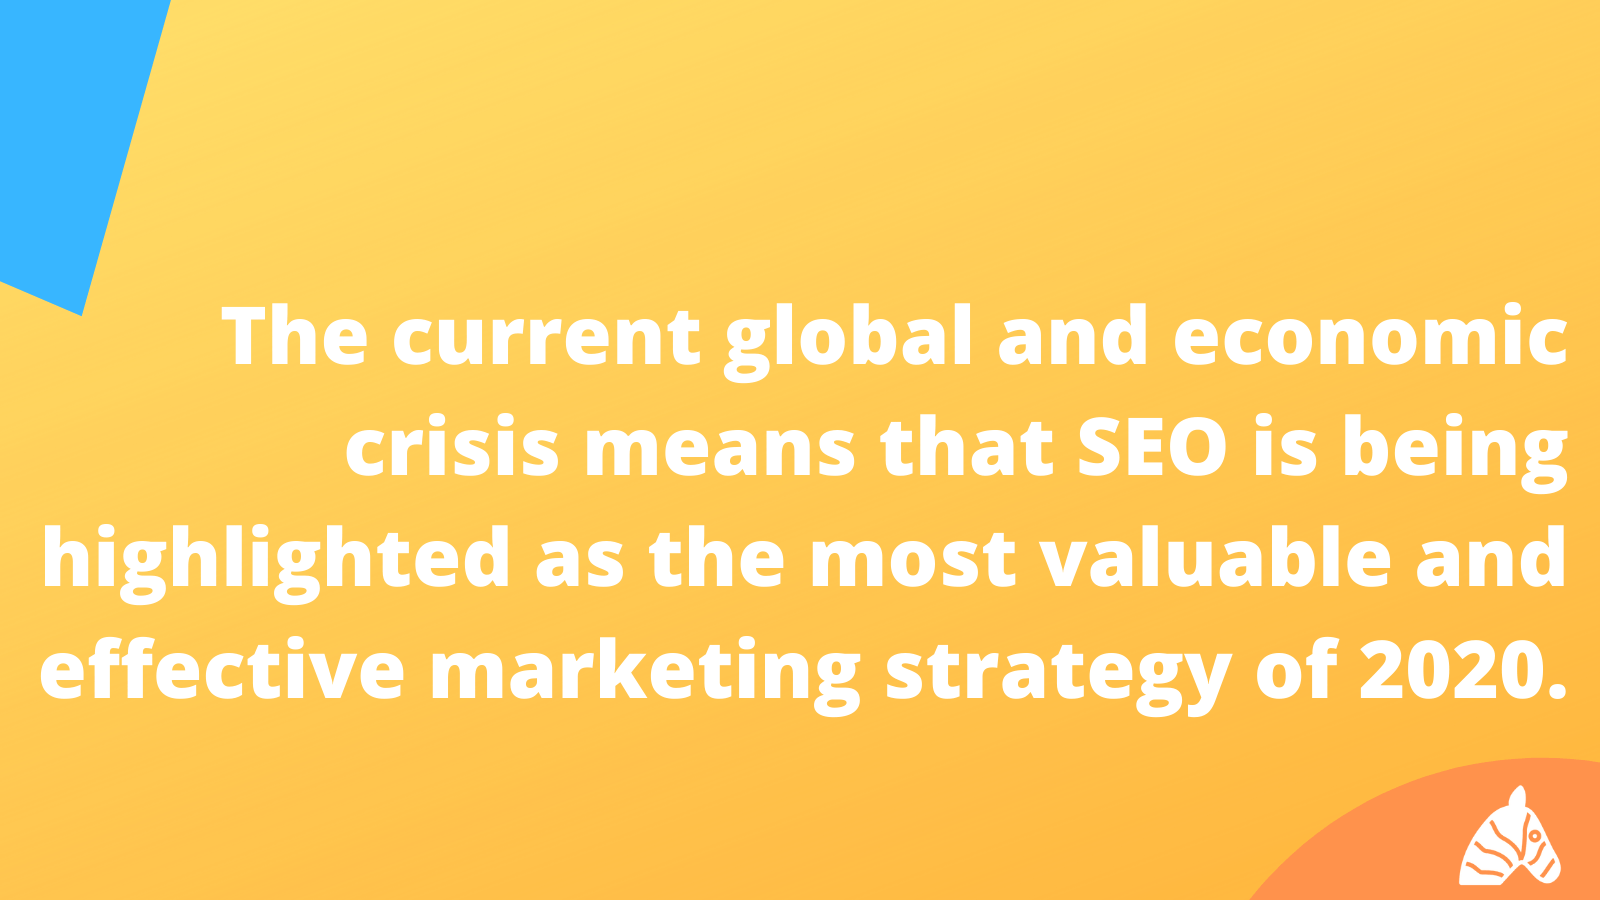 COVID-19 has highlighted the importance of SEO in an Holistic marketing plan